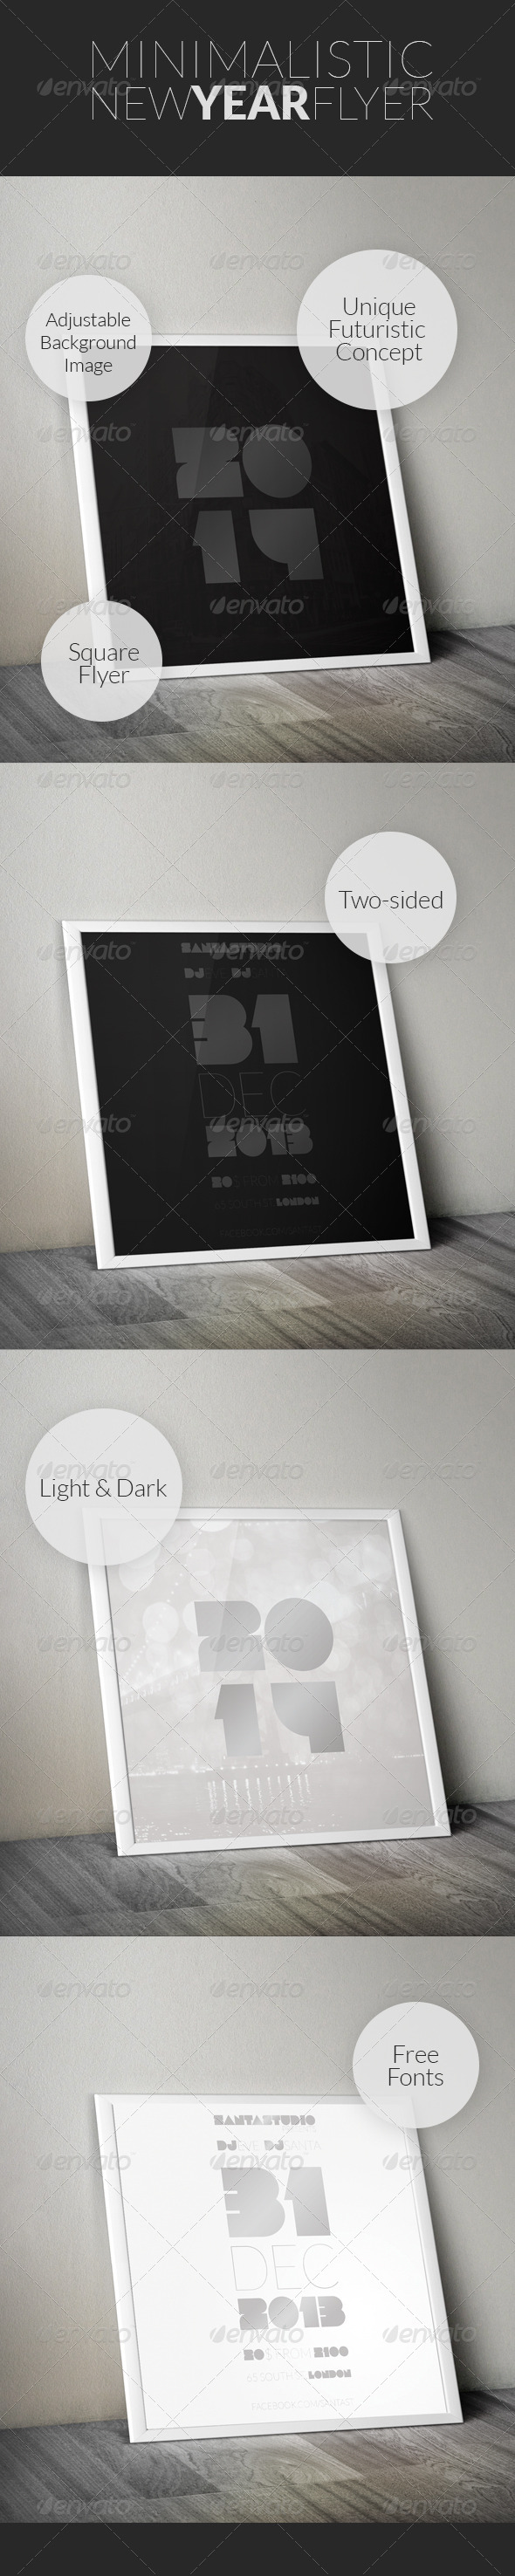 GraphicRiver Minimal New Year Flyer 6345480